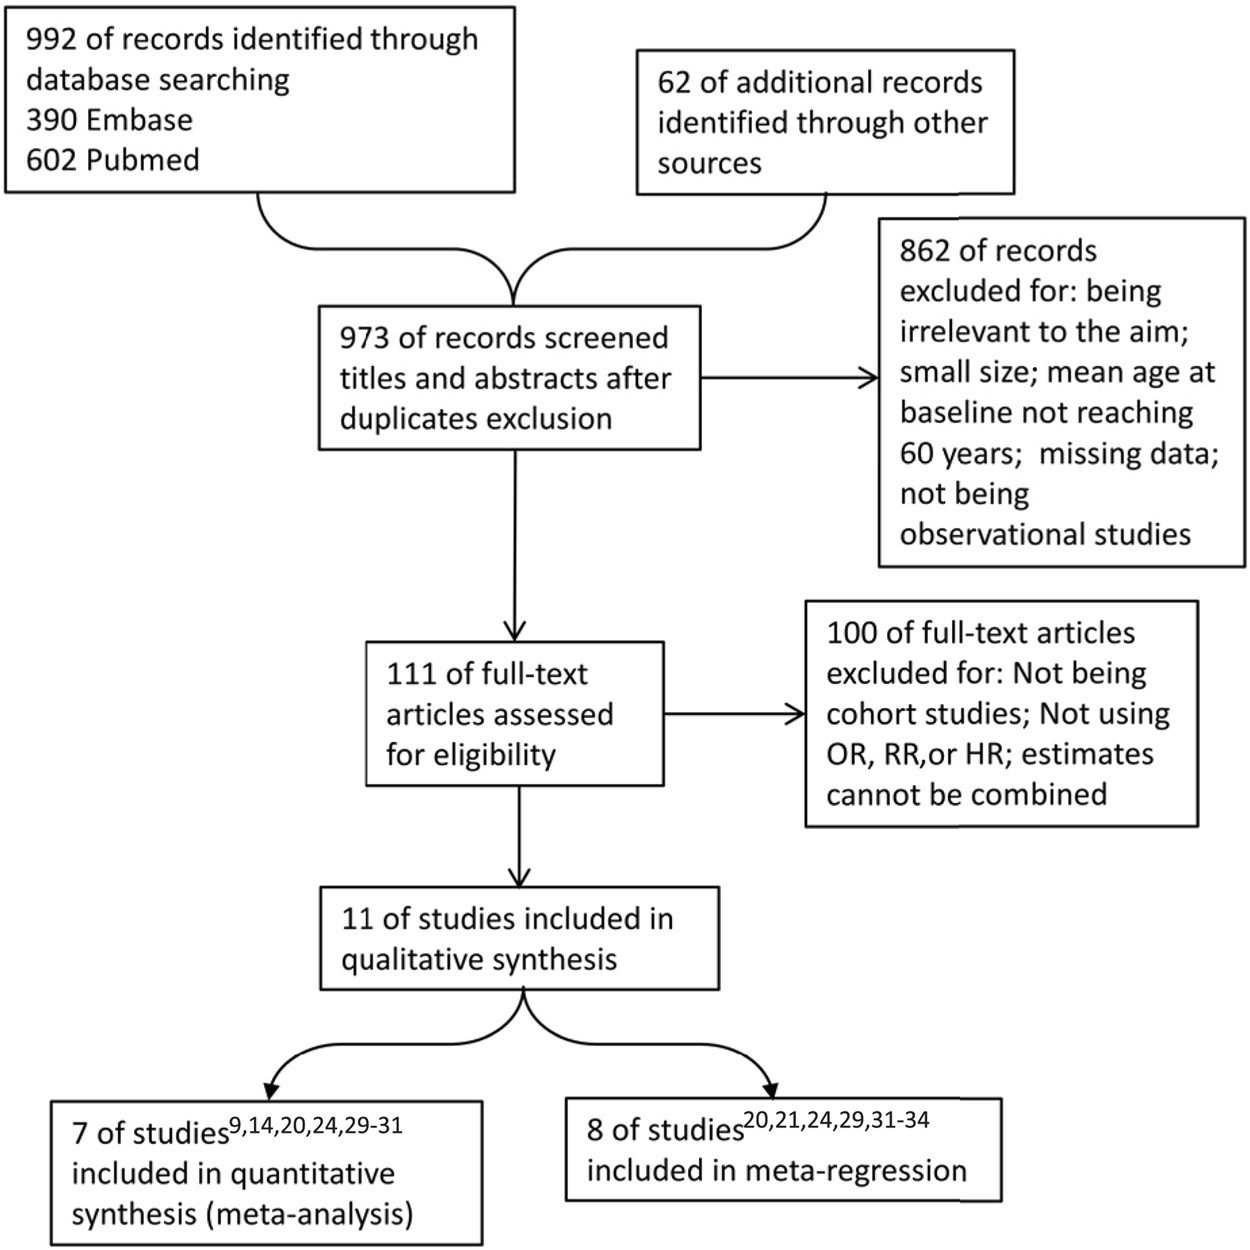 The Risk Of Cognitive Impairment Associated With Hearing Function In